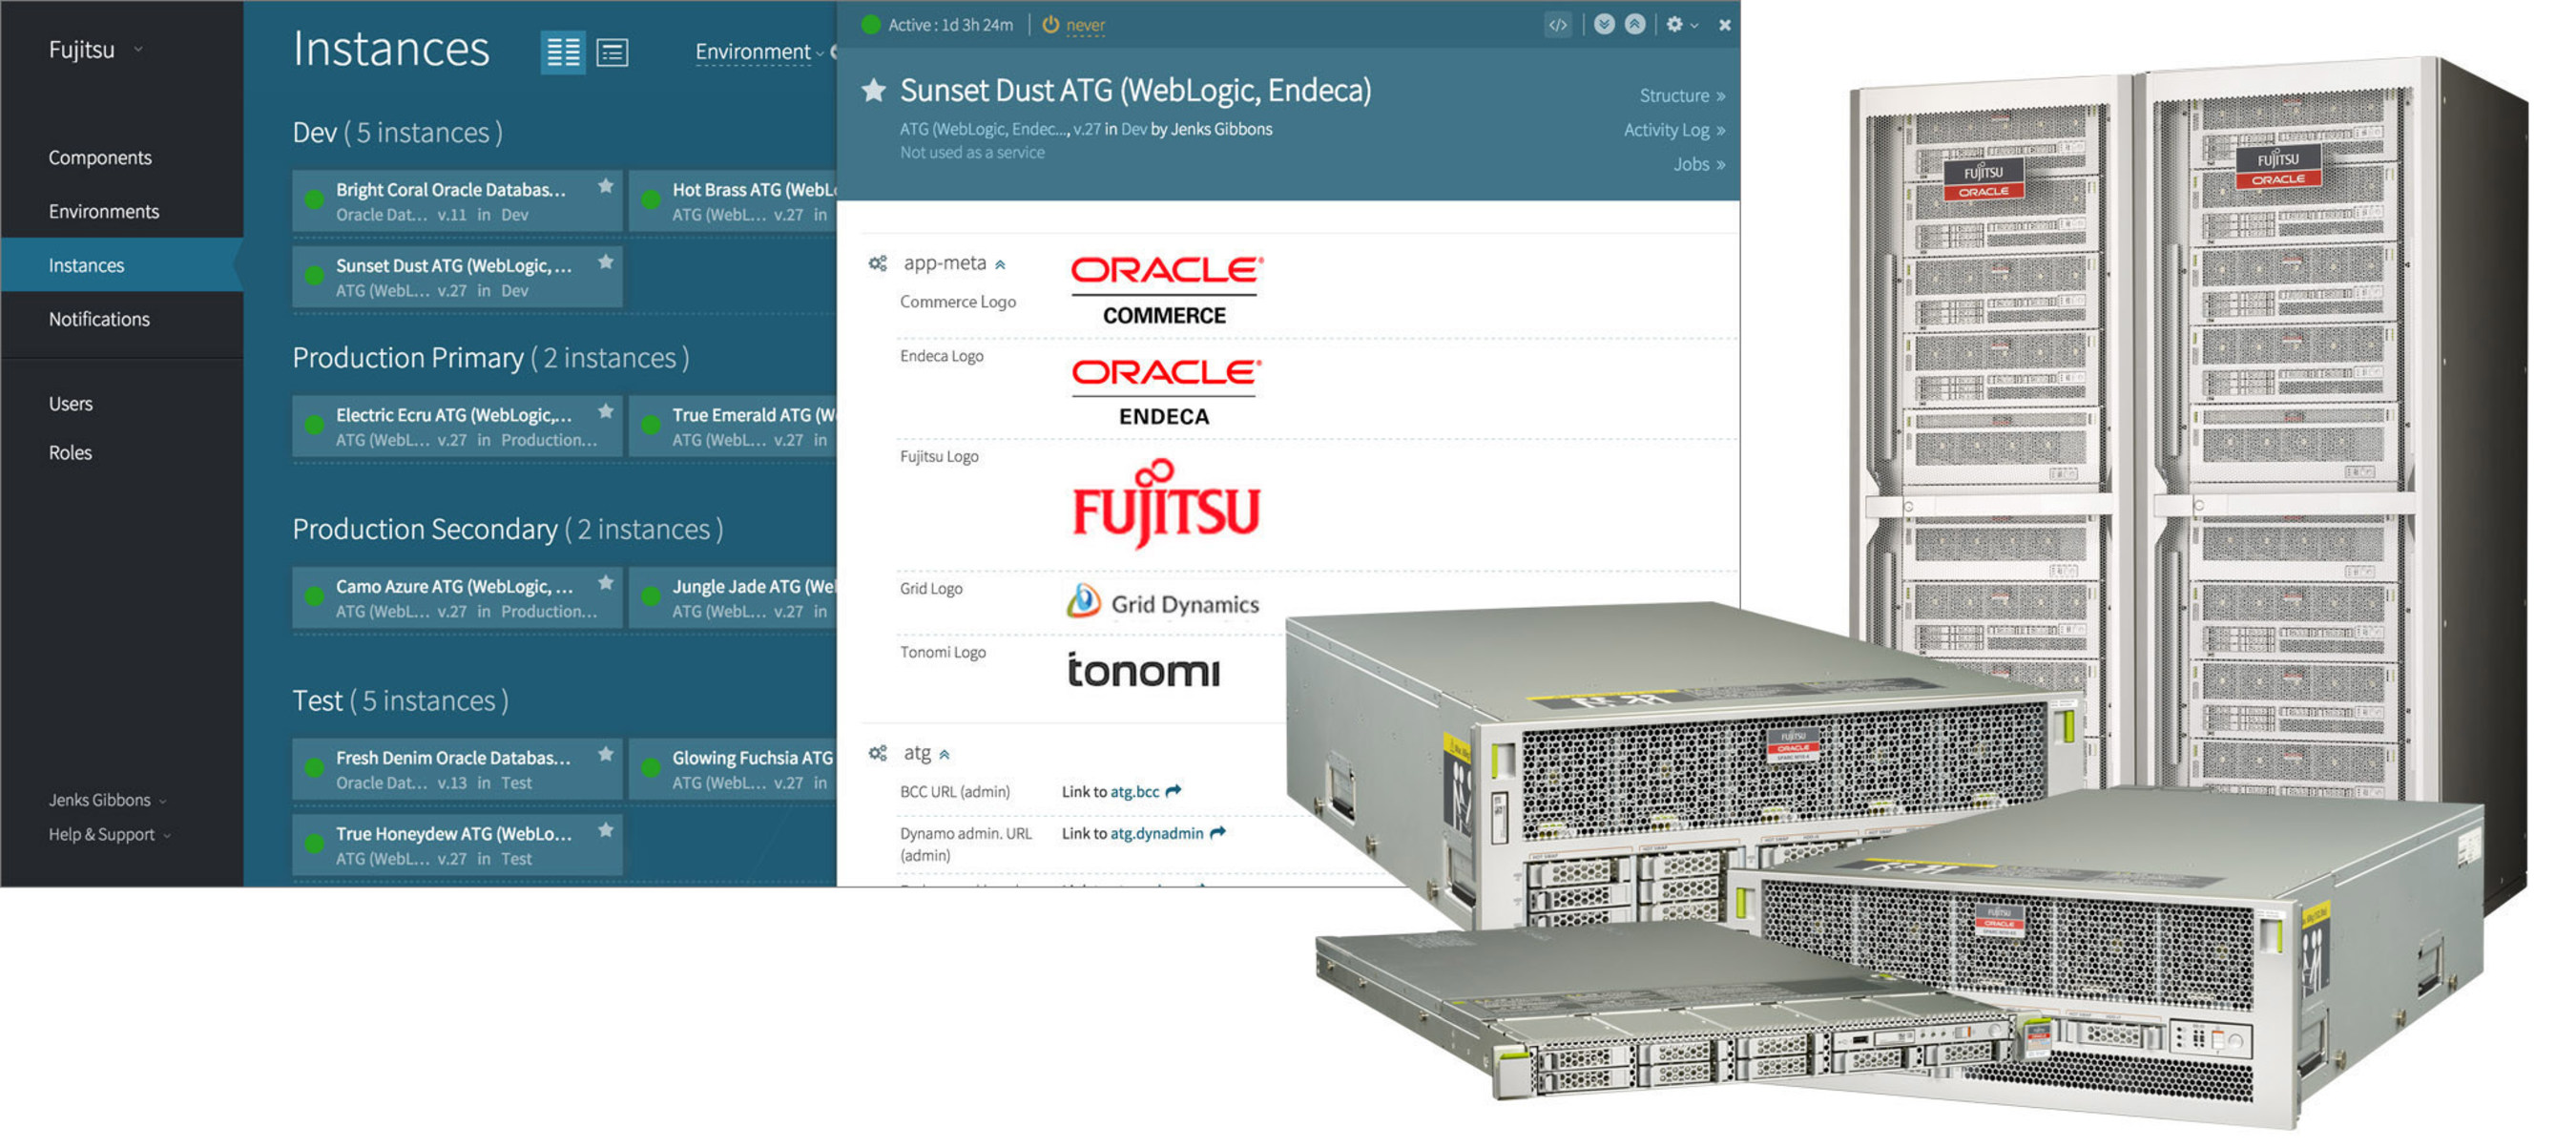 Grid Dynamics and Fujitsu Deliver Oracle Commerce Platform on Fujitsu M10 Servers as a